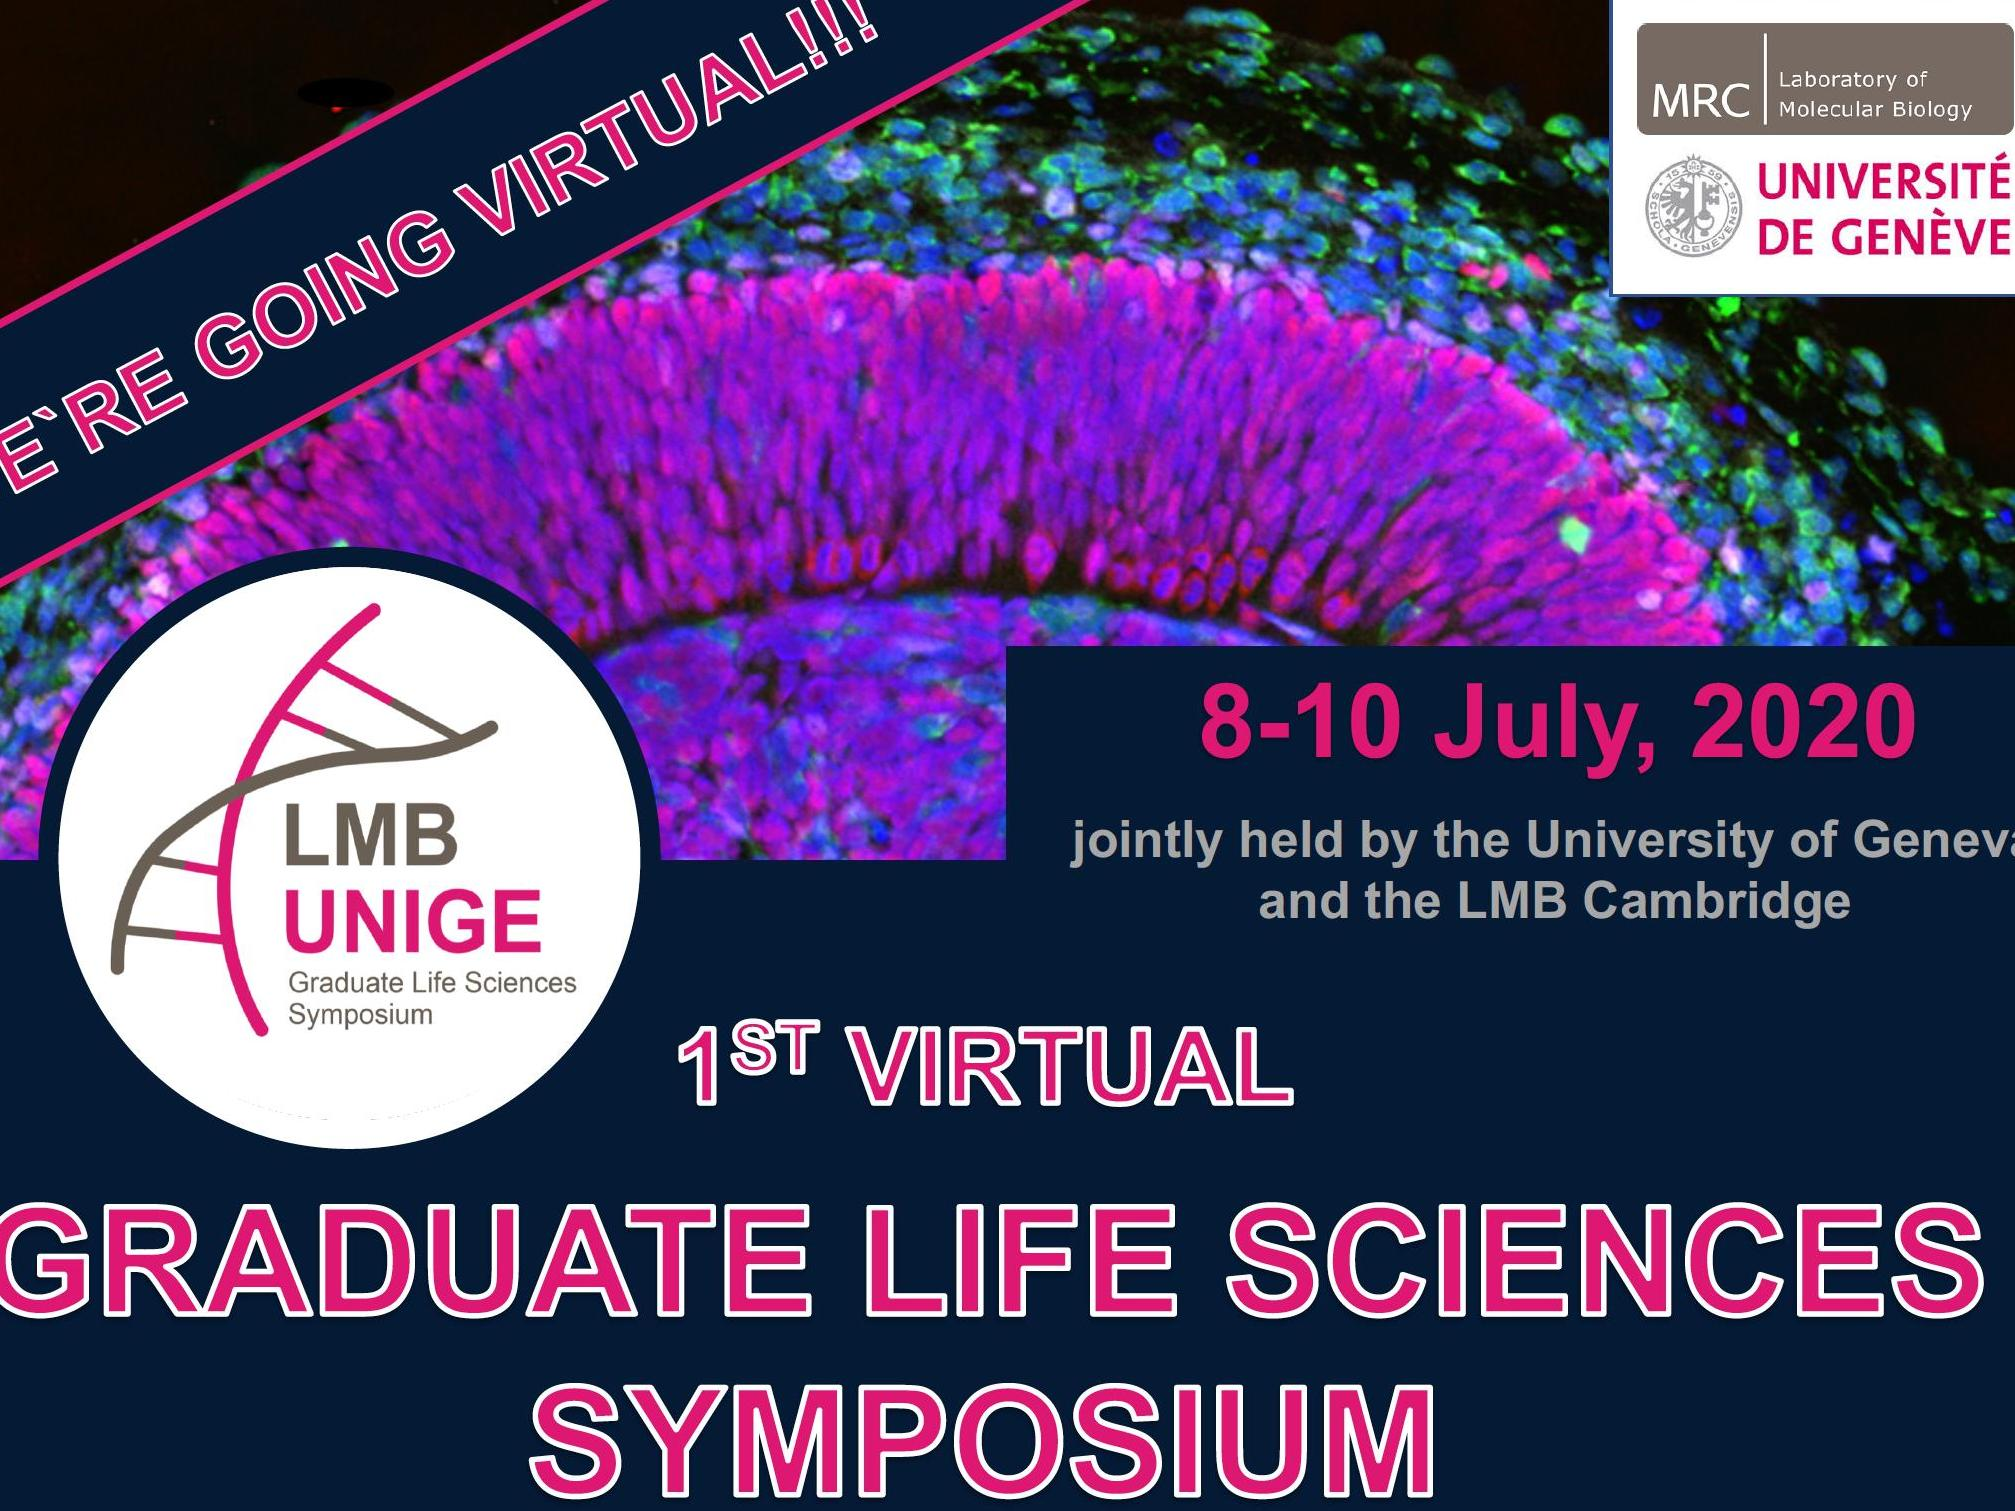 1st Virtual Graduate Life Sciences Symposium